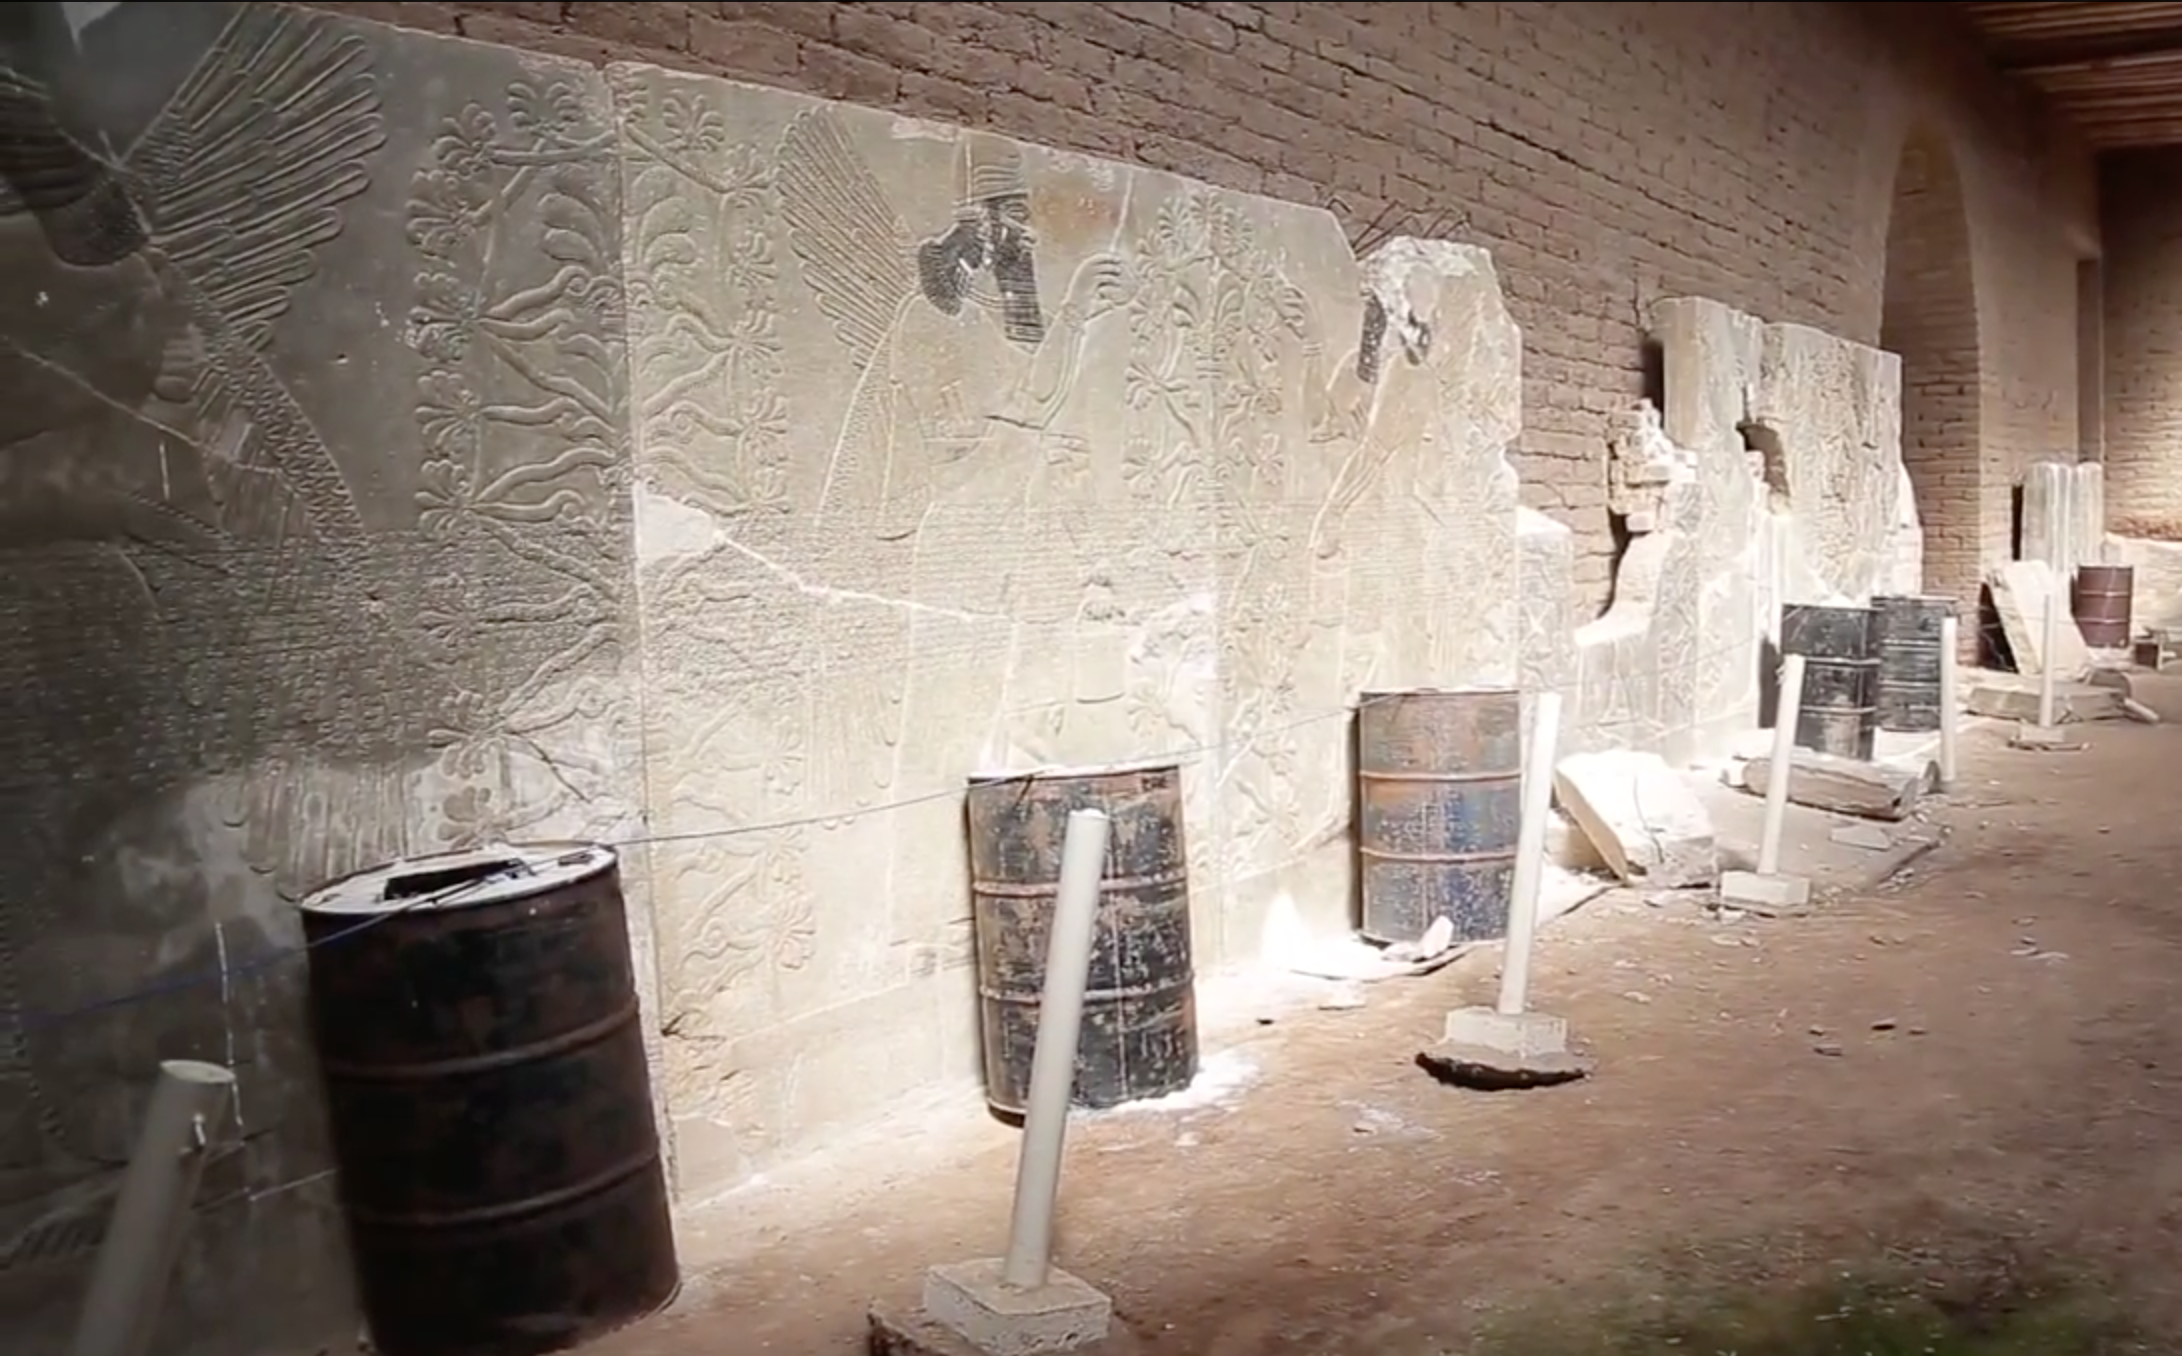 Nimrud, Northwest Palace, barrel bombs arranged in front of relief panels (still image from video released by ISIL on April 11, 2015)